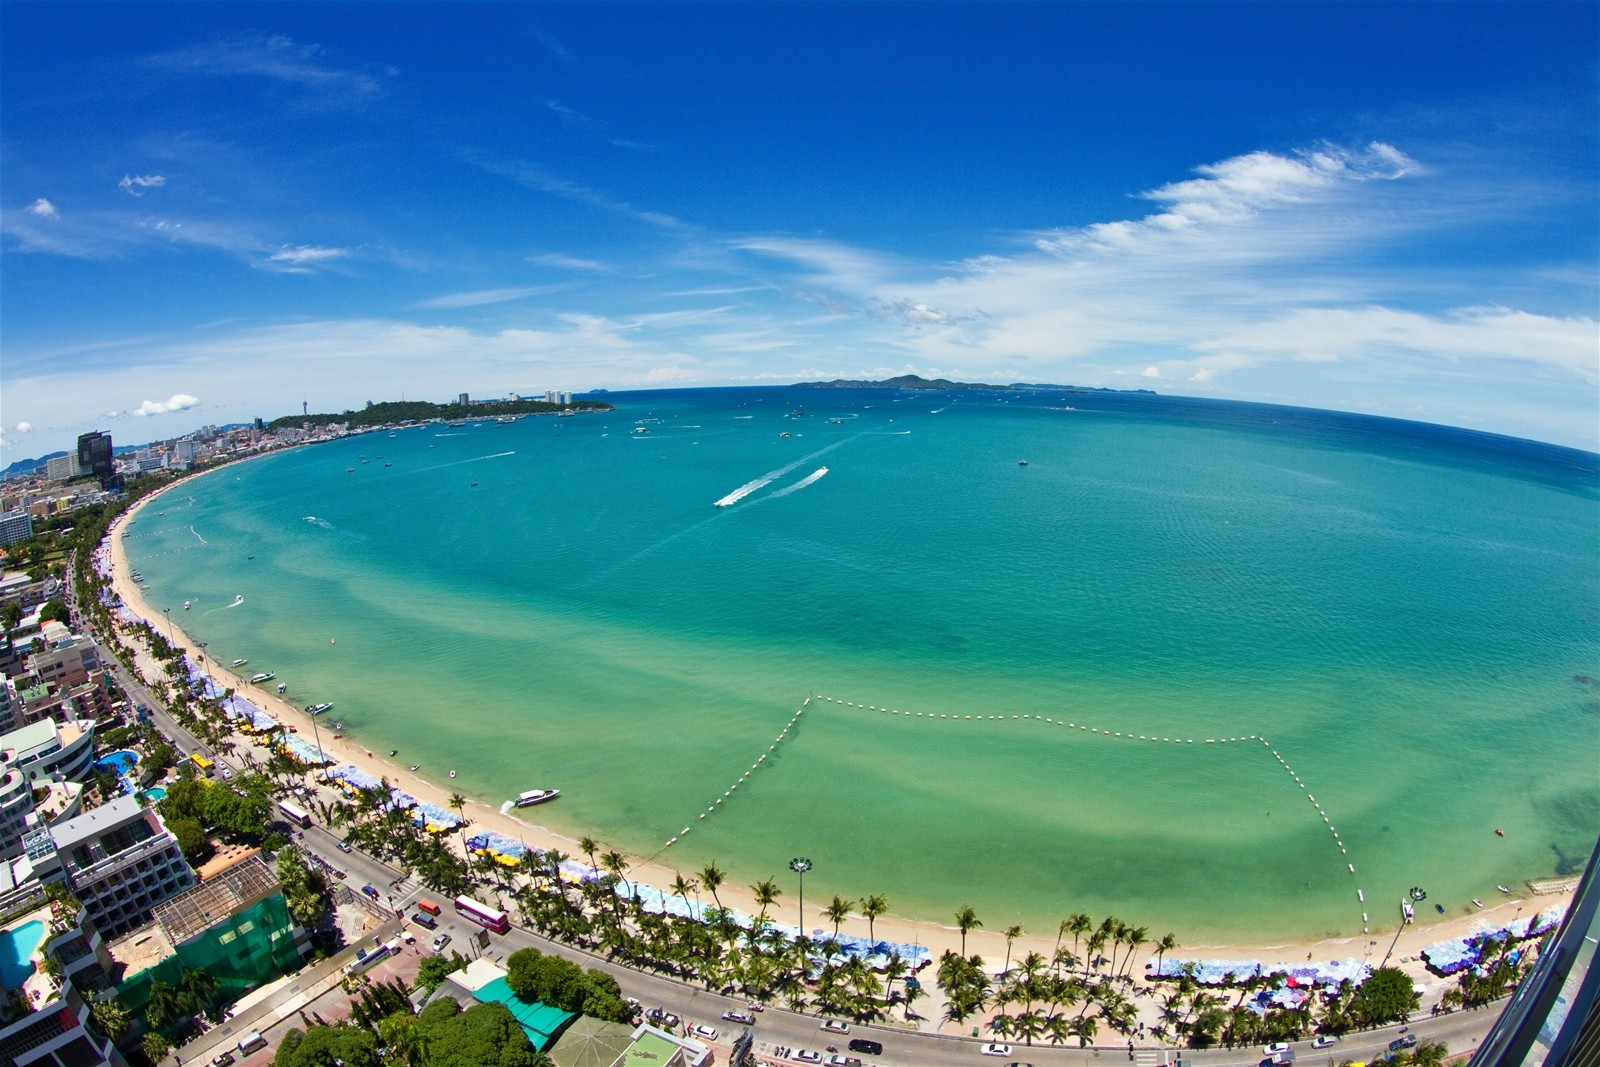 Pattaya best islands near bangkok beautiful islands near bangkok islands near bangkok for honeymoon